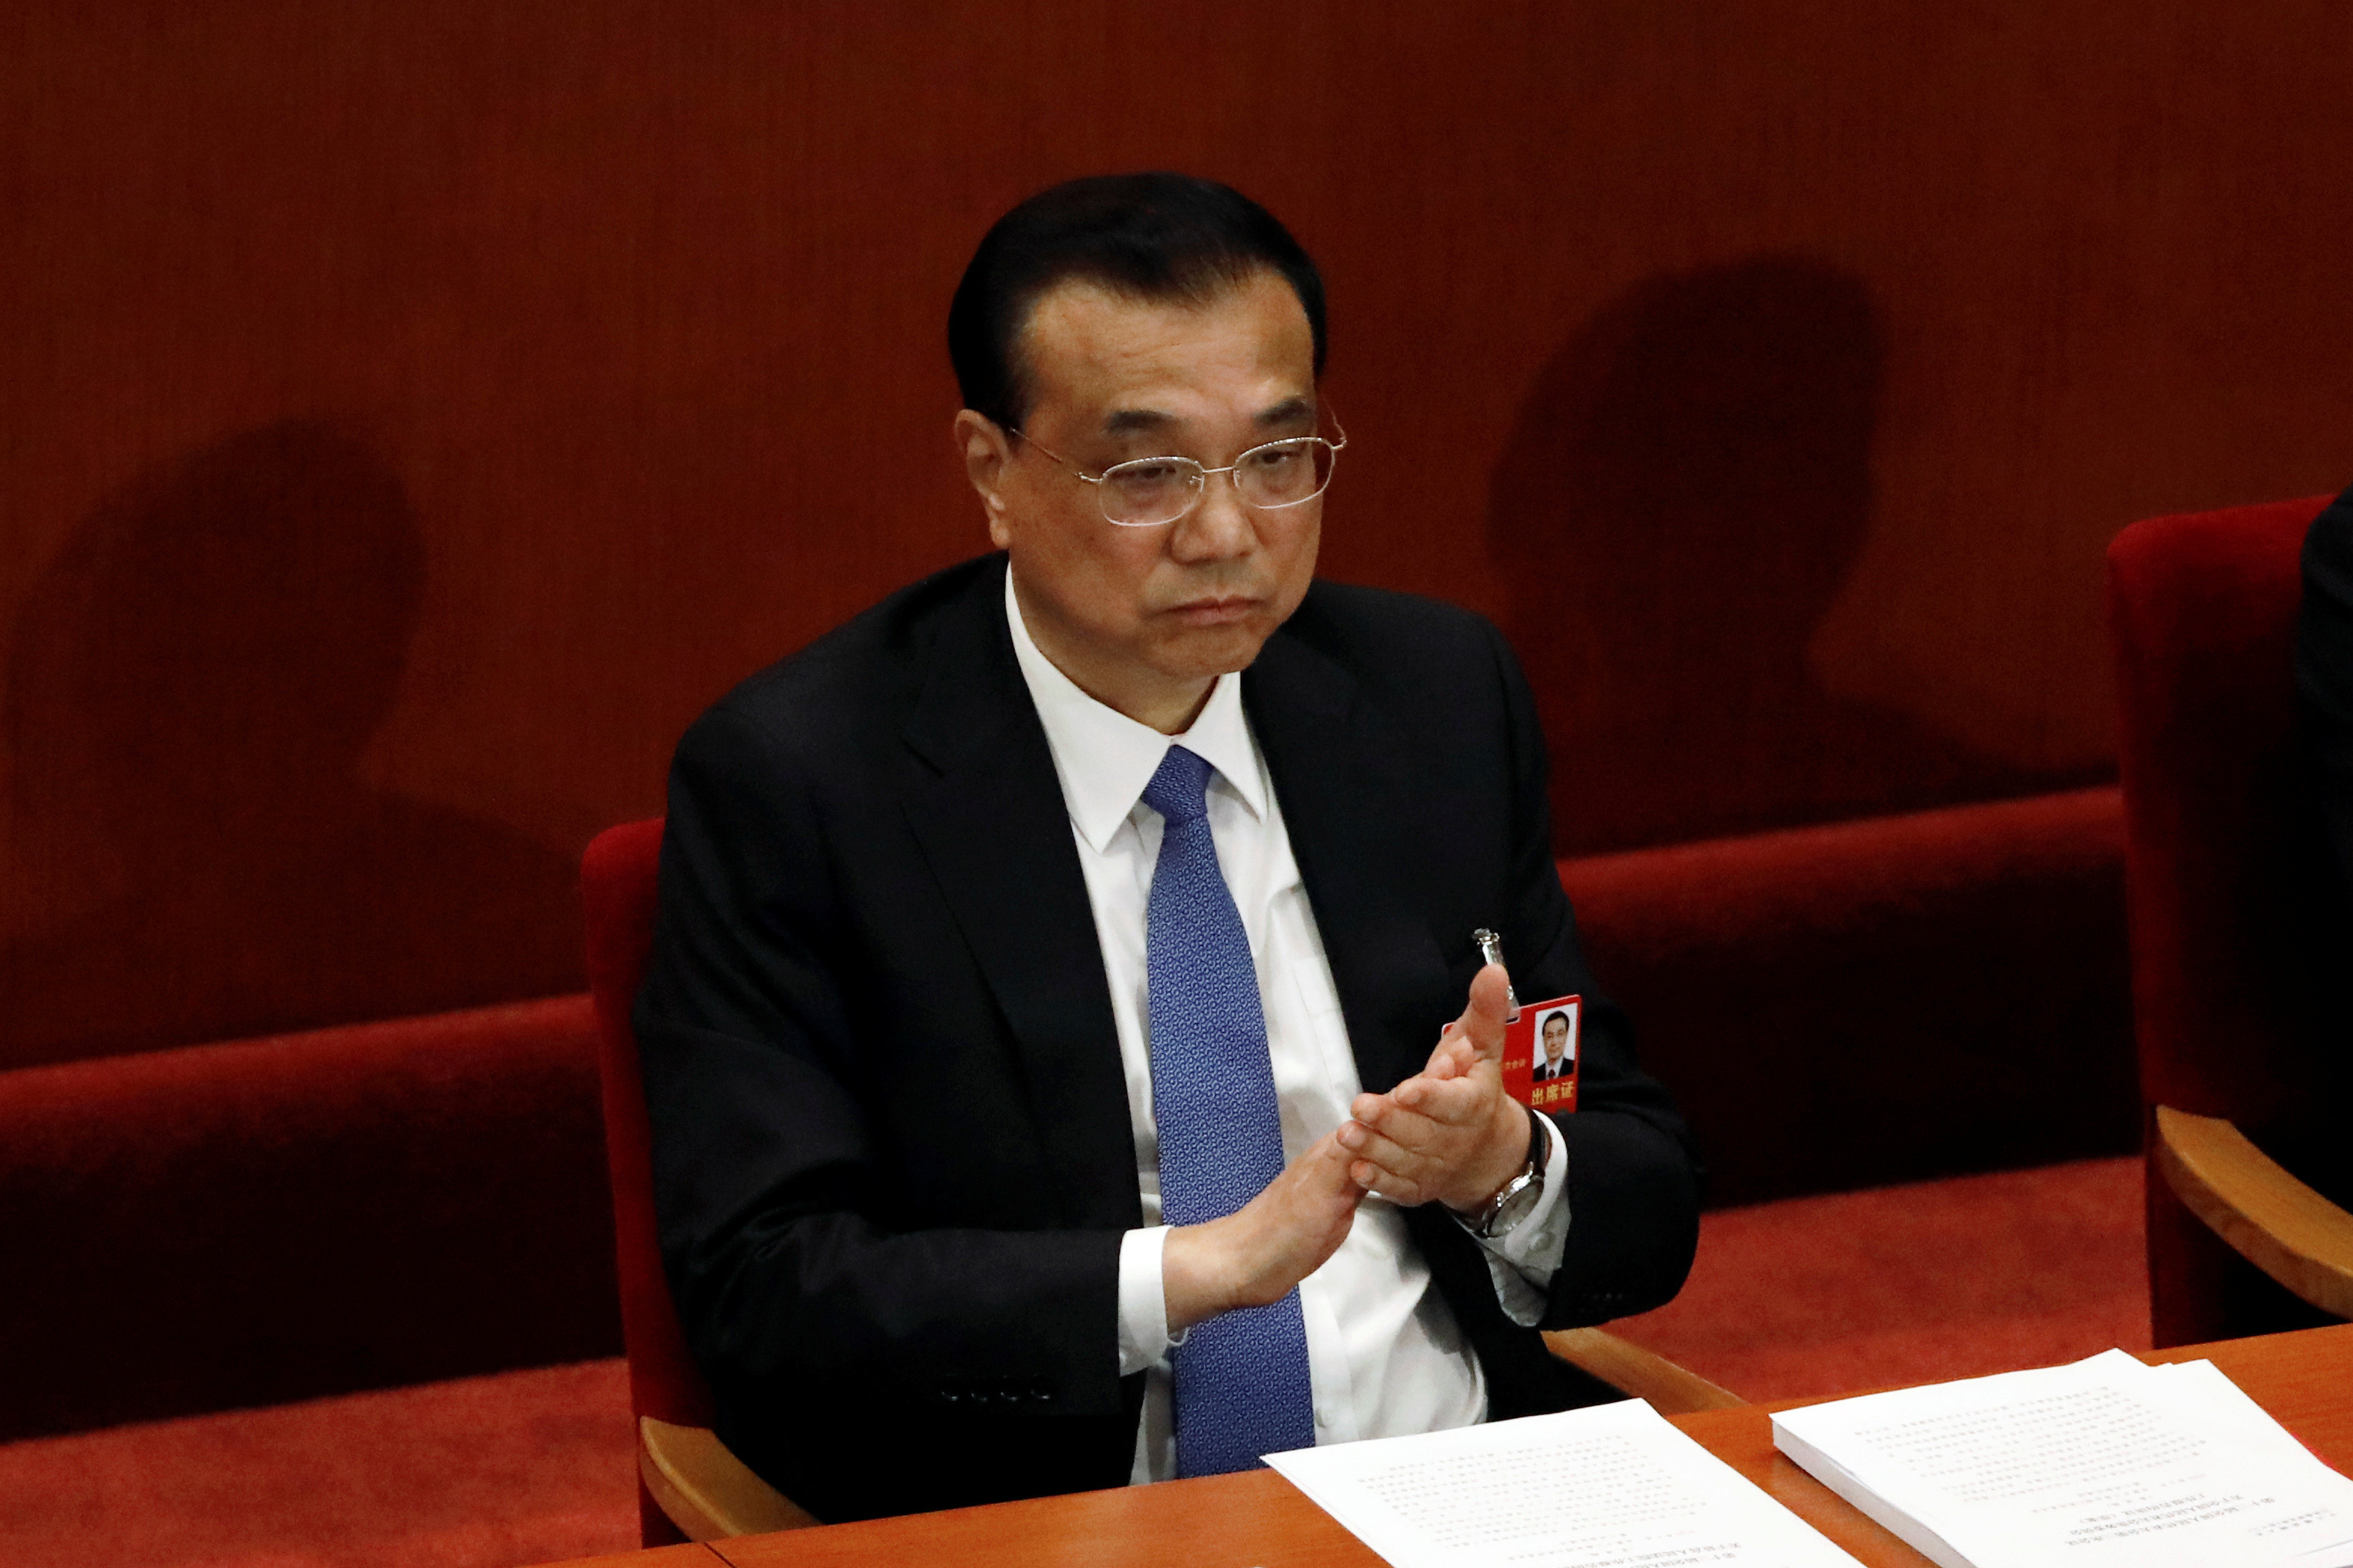 Chinese Premier Li Keqiang attends the closing session of the National People's Congress (NPC) at the Great Hall of the People in Beijing, China May 28, 2020. REUTERS/Carlos Garcia Rawlins - RC2LXG93Q12T